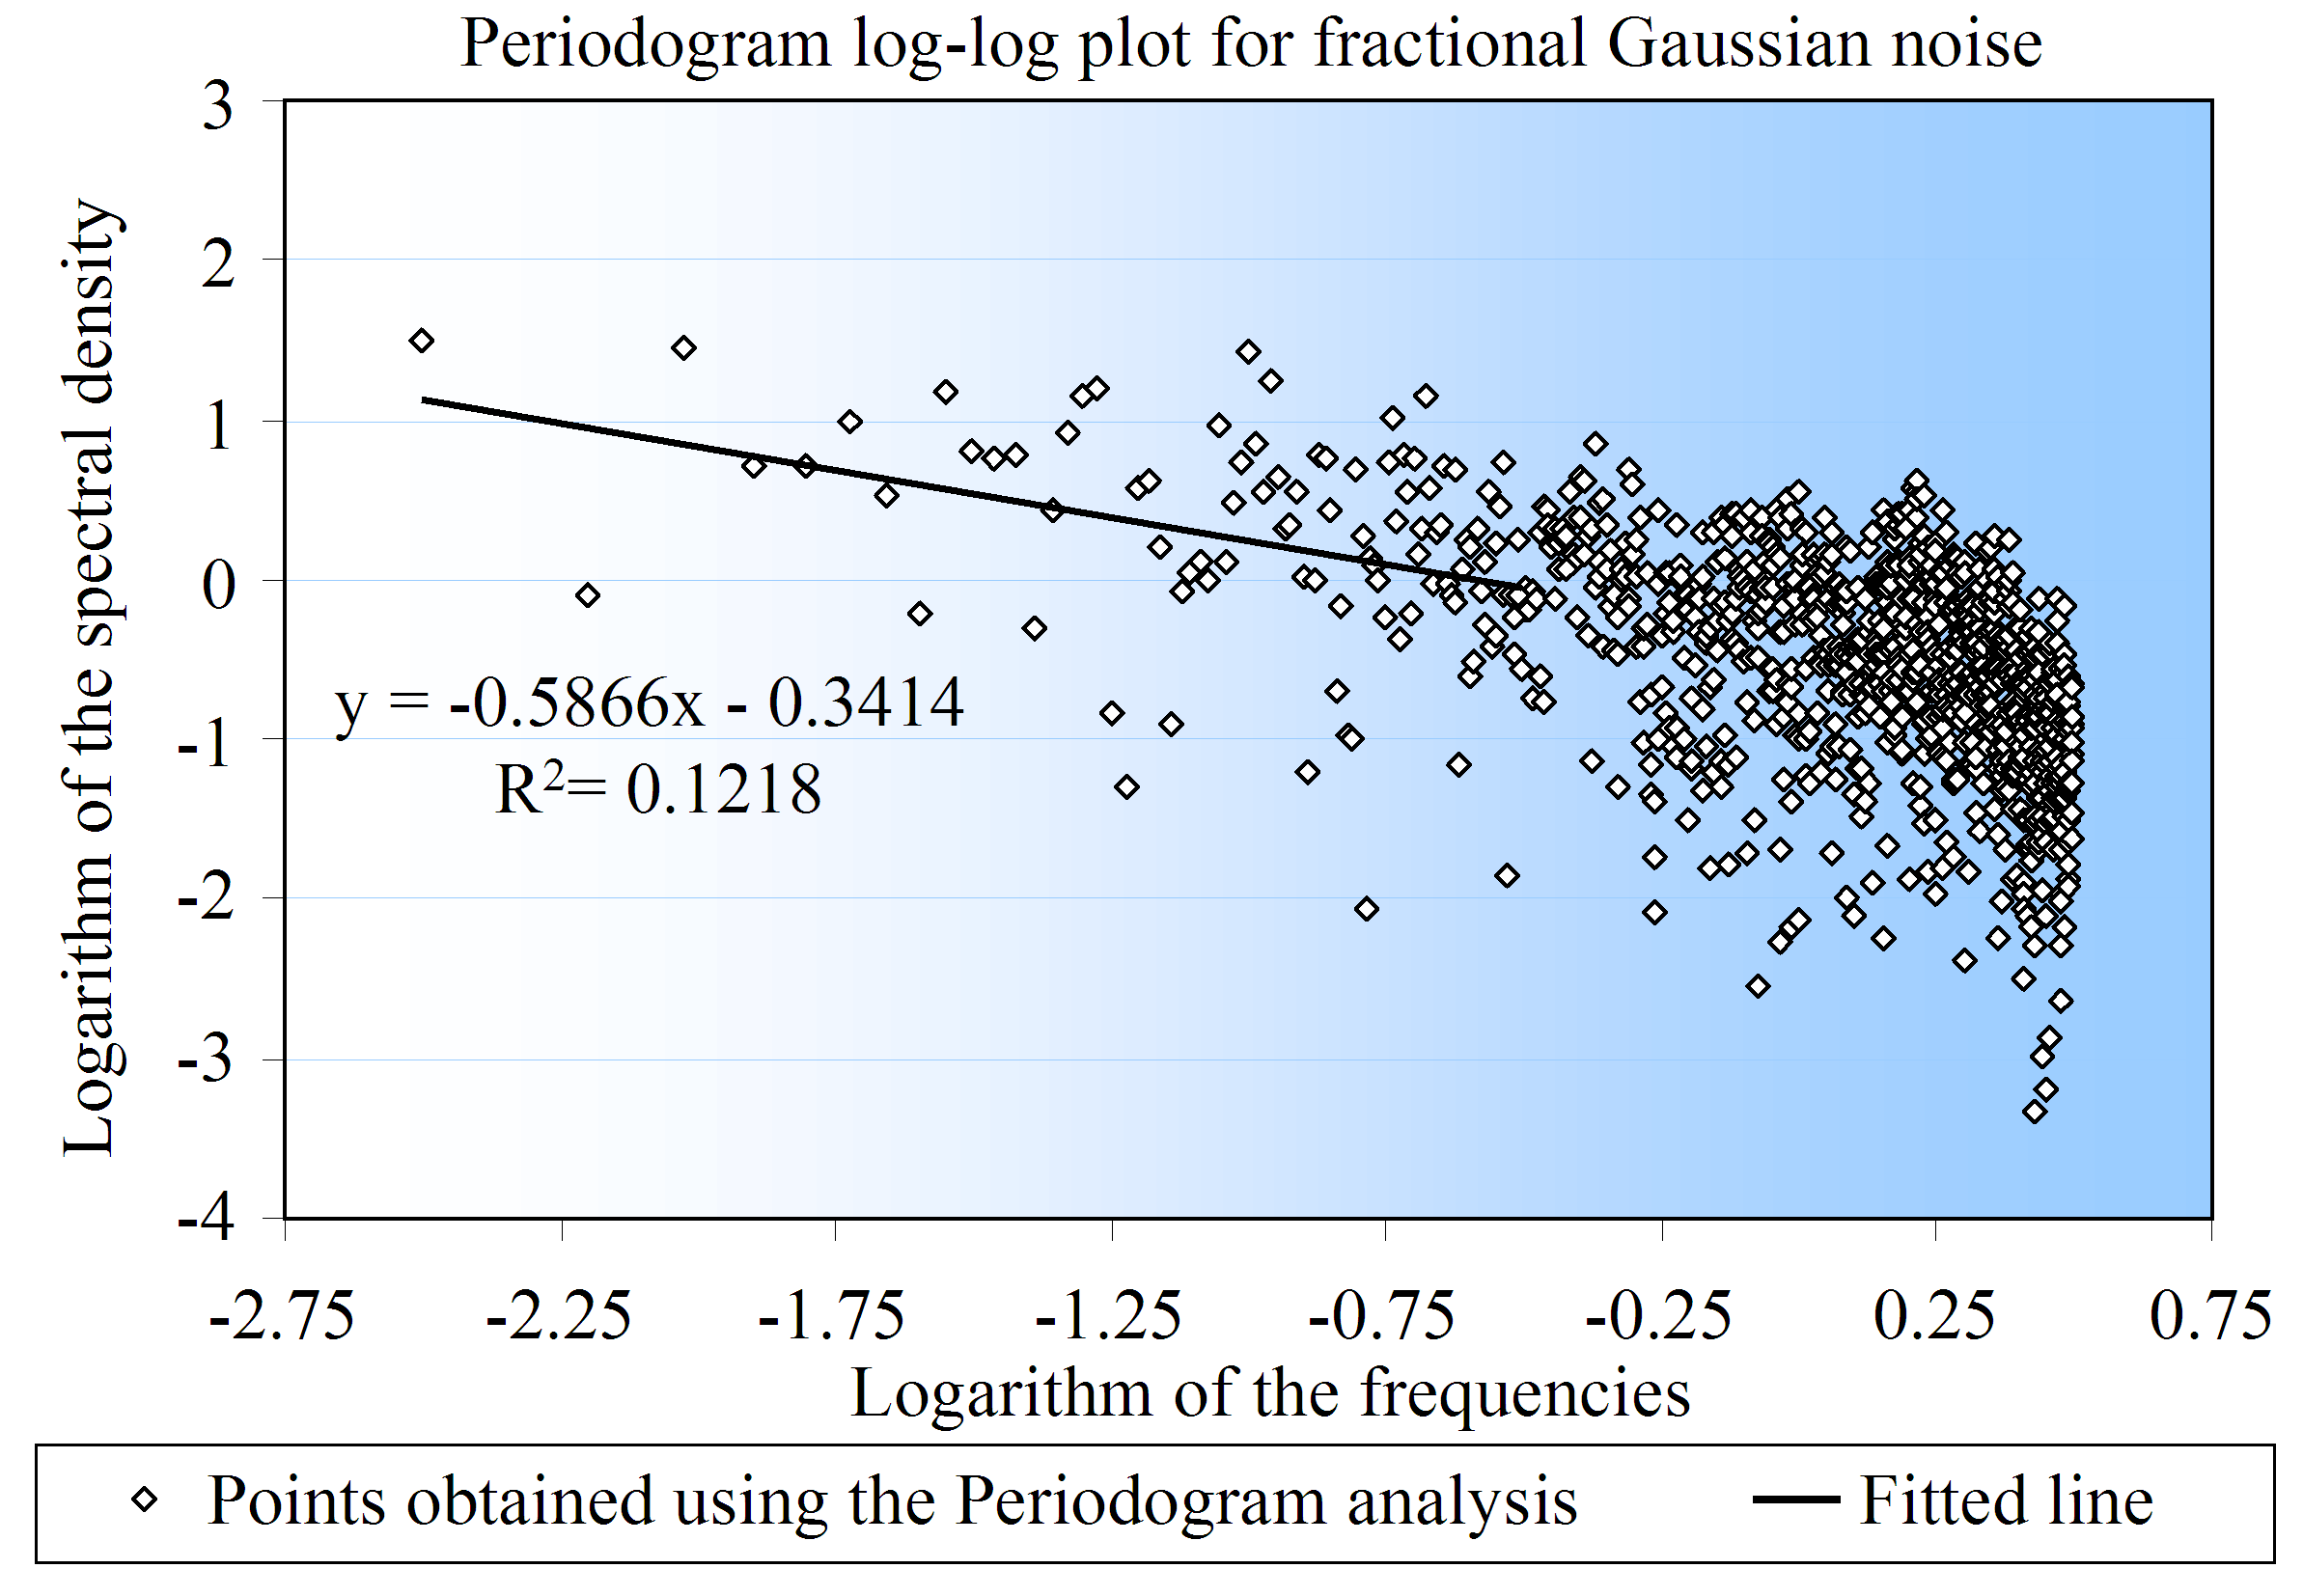 Figure 2.10: The Periodogram log-log plot for an fgn with expected Hurst parameter equal to 0.85.